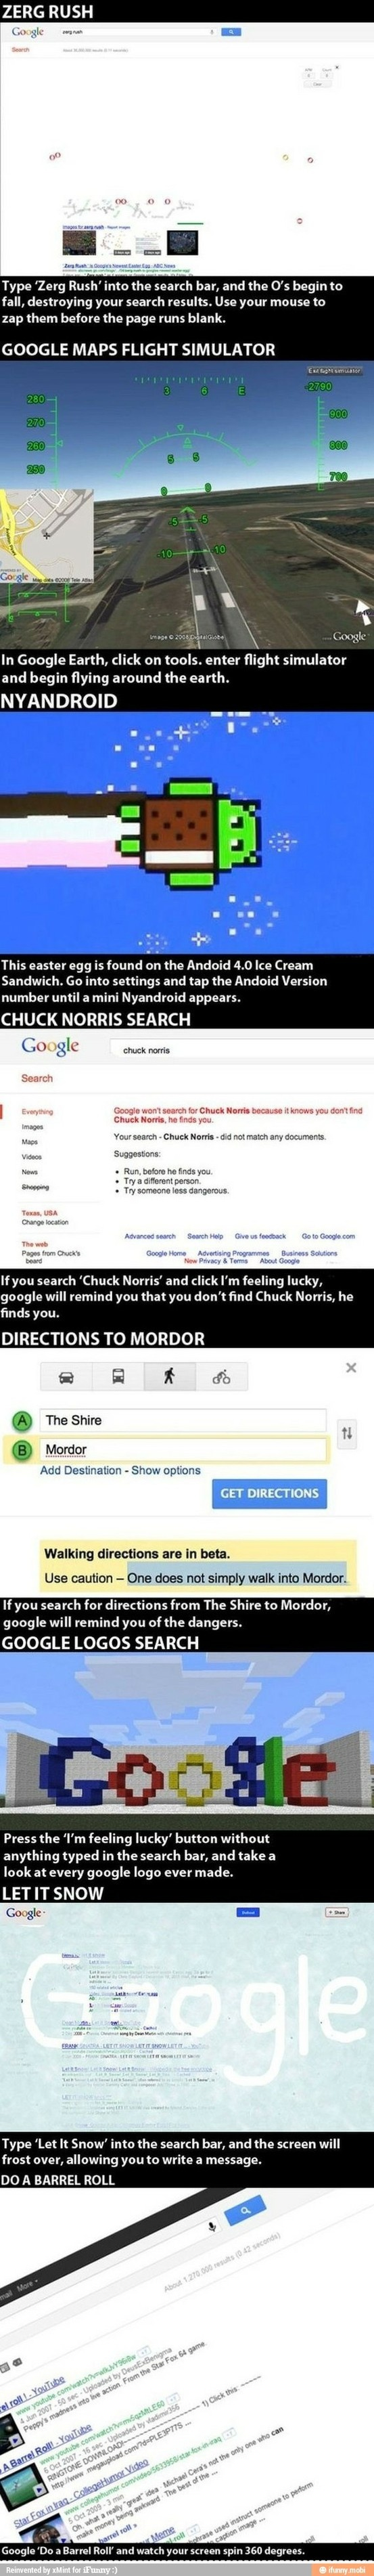 google hacks.... Barrel roll and let it snow only work on google chrome and you have to search find chuck Norris.